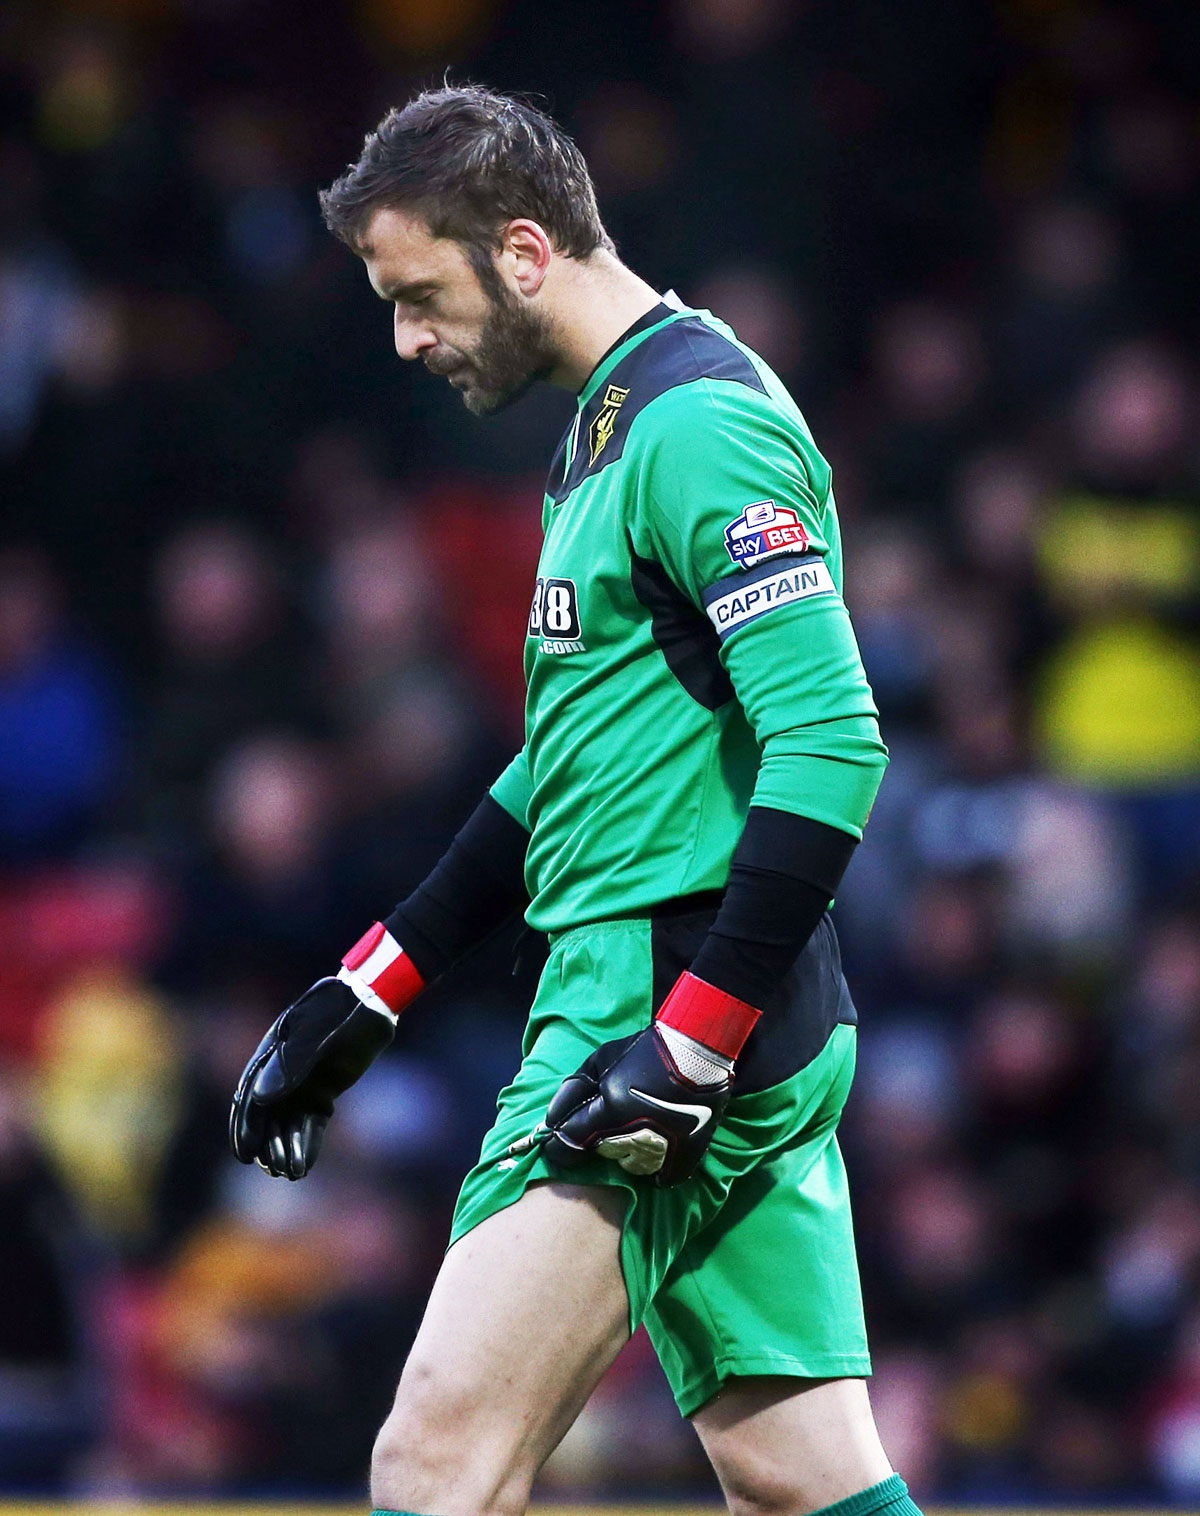 Manuel Almunia's last minute mistake cost the Hornets two points. Picture: Action Images